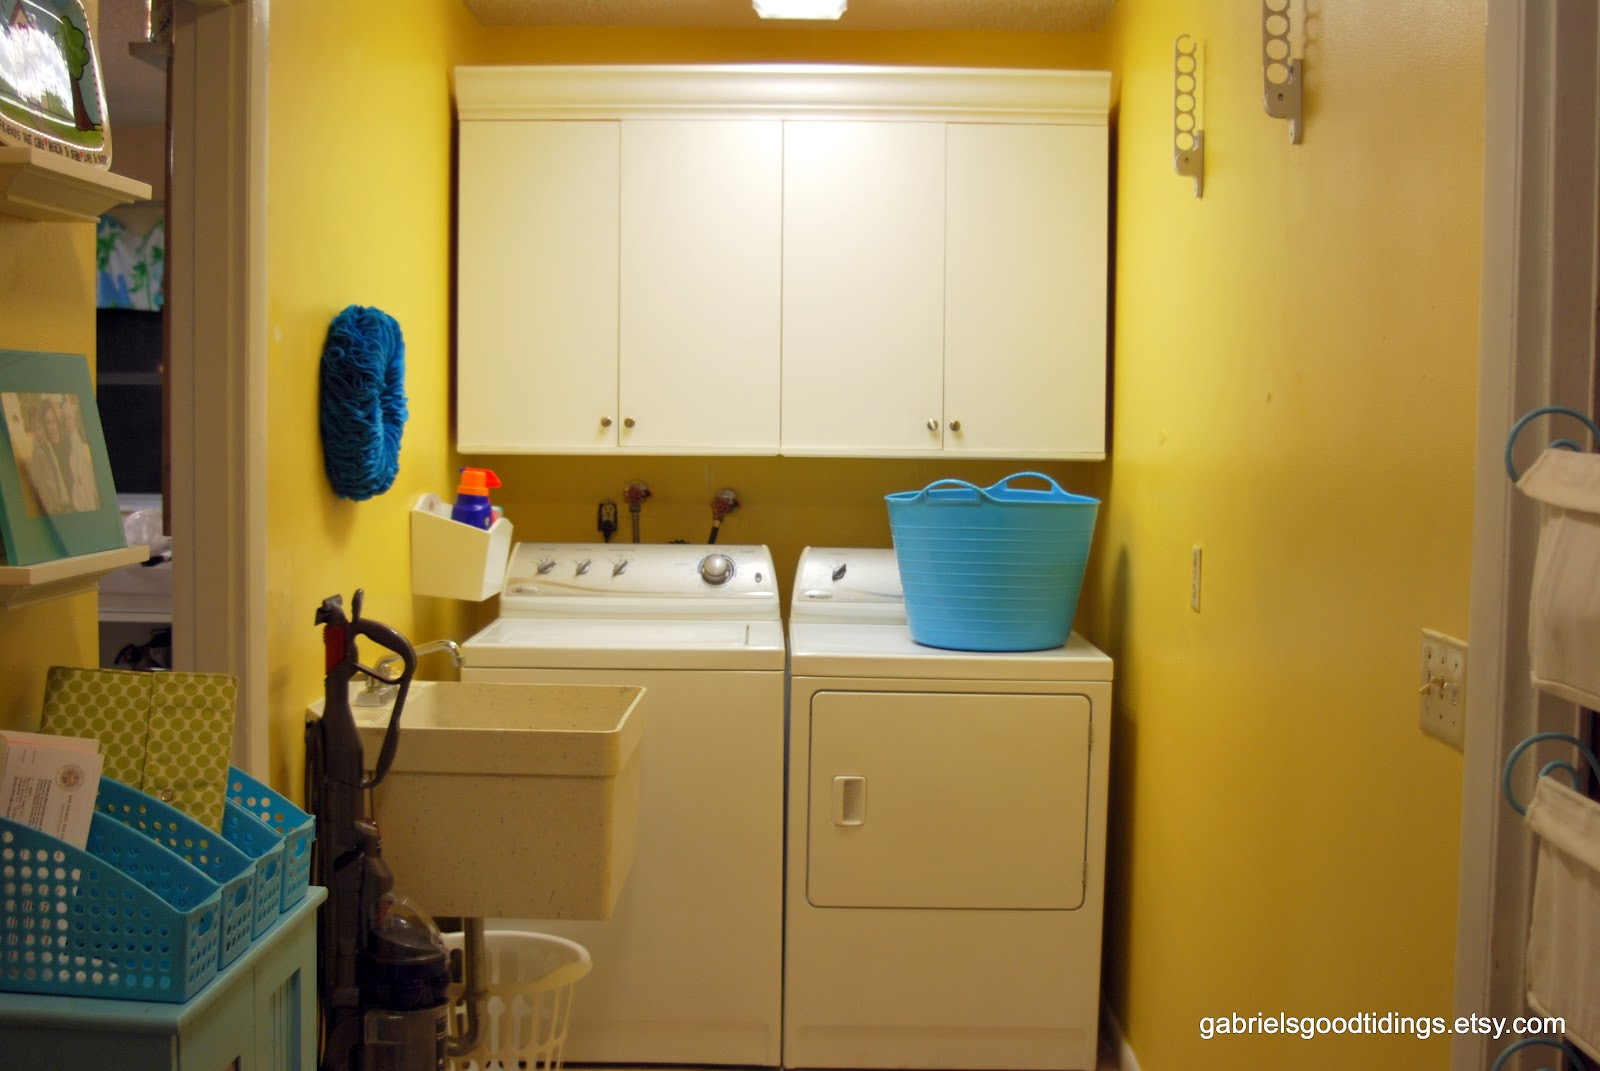 Cabinets Laundry Room Organization